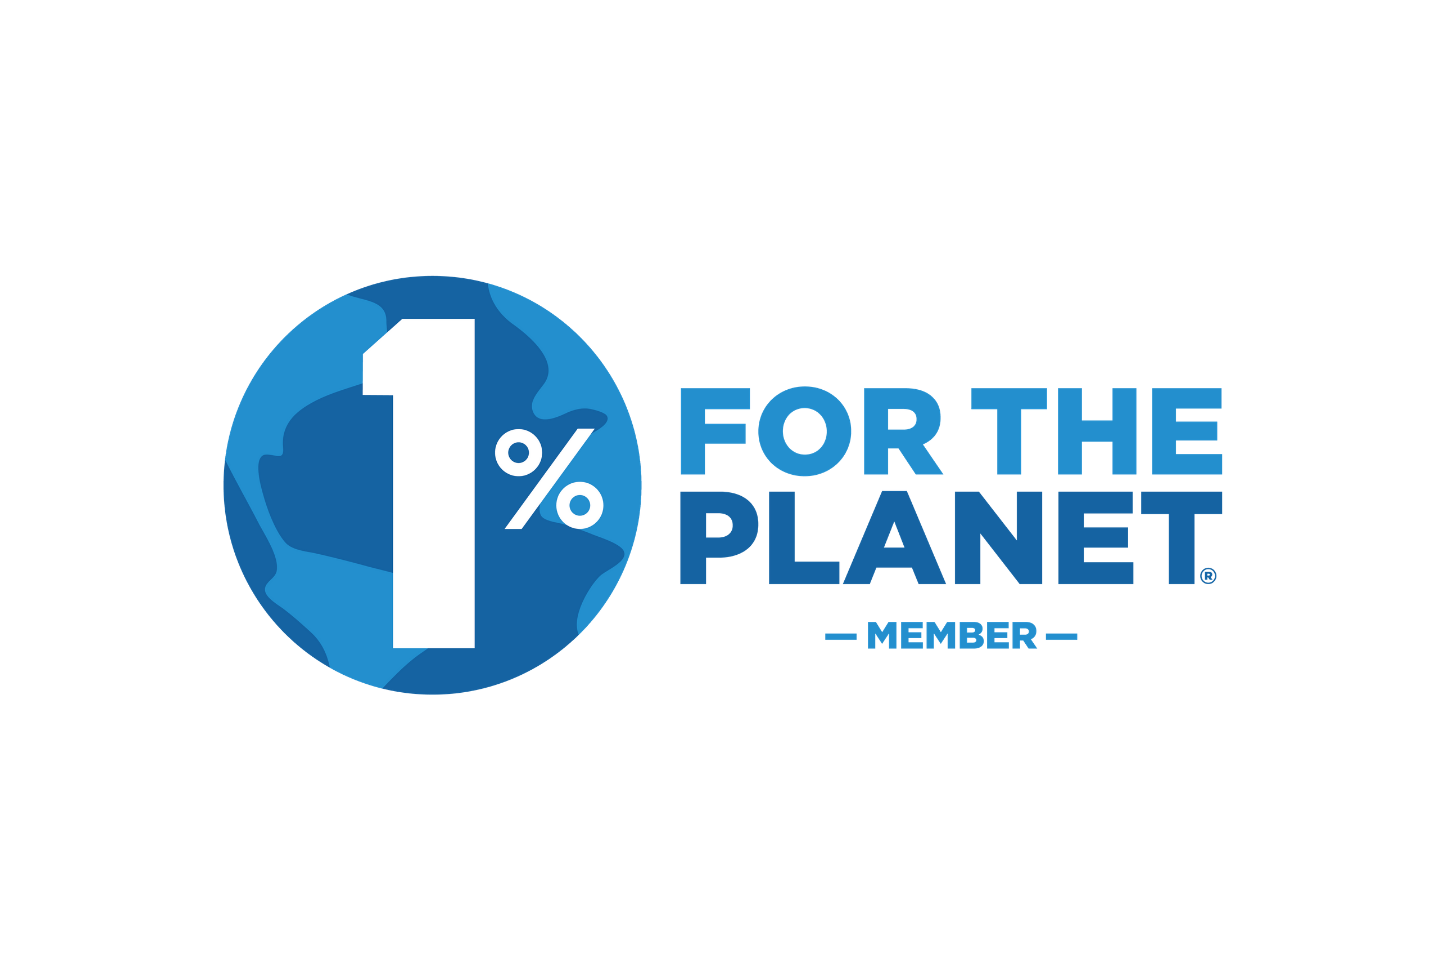 one-percent-for-the-planet-logo